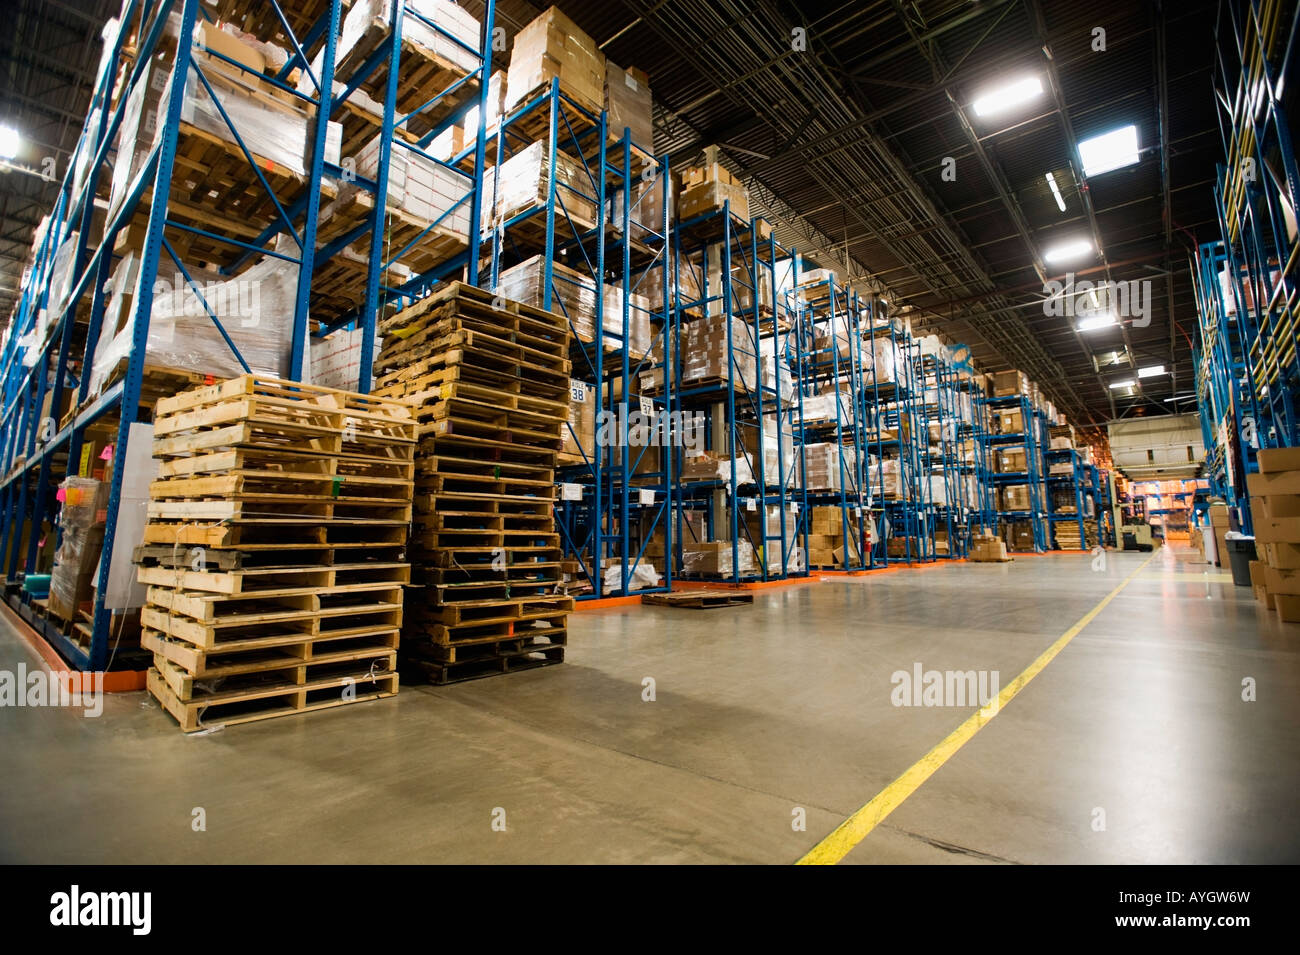 Interior view of warehouse - Stock Image